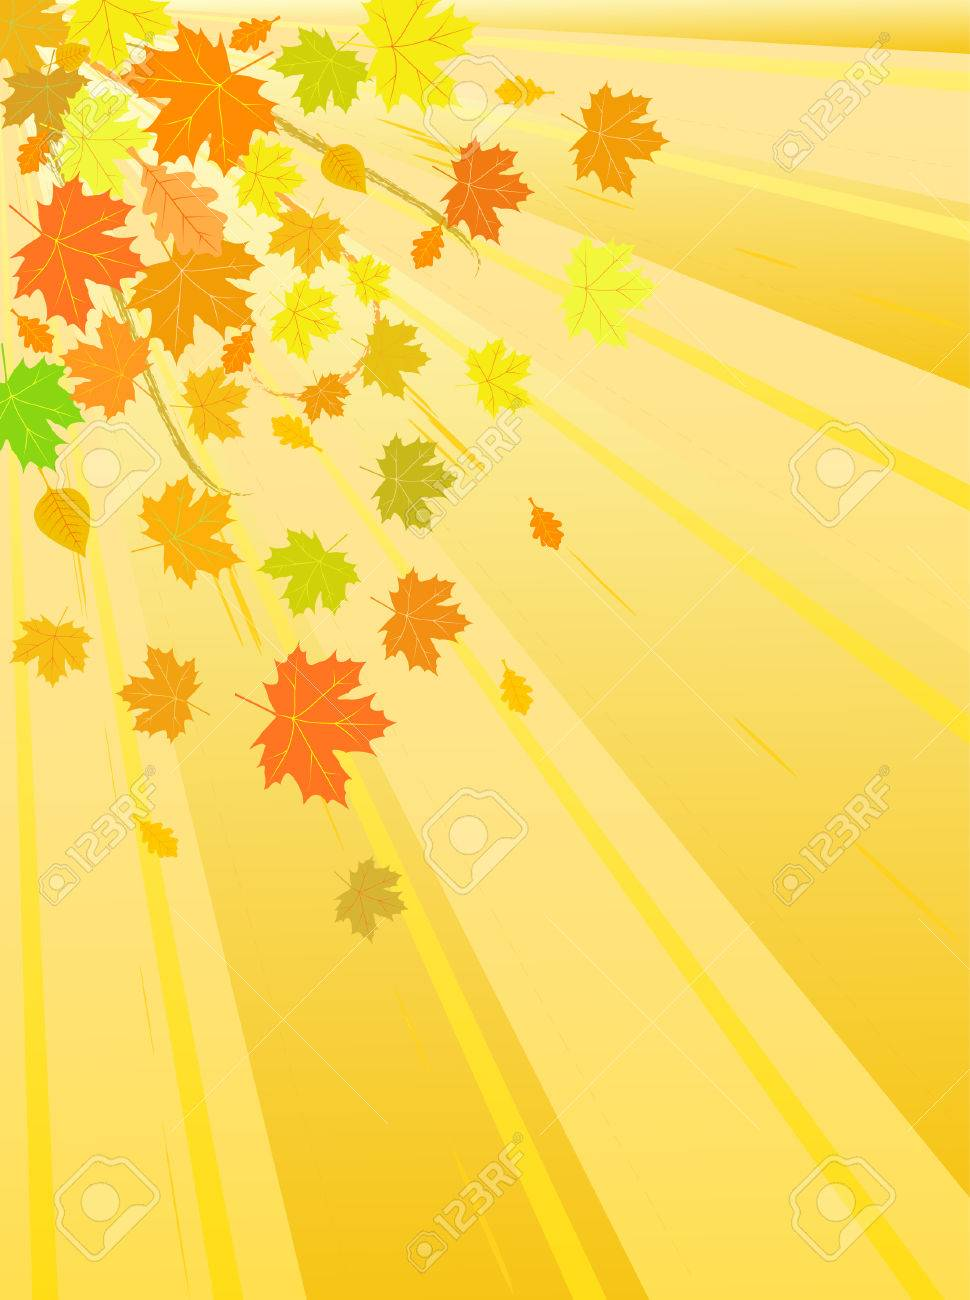 vector autumn leaves background Stock Vector - 5195700